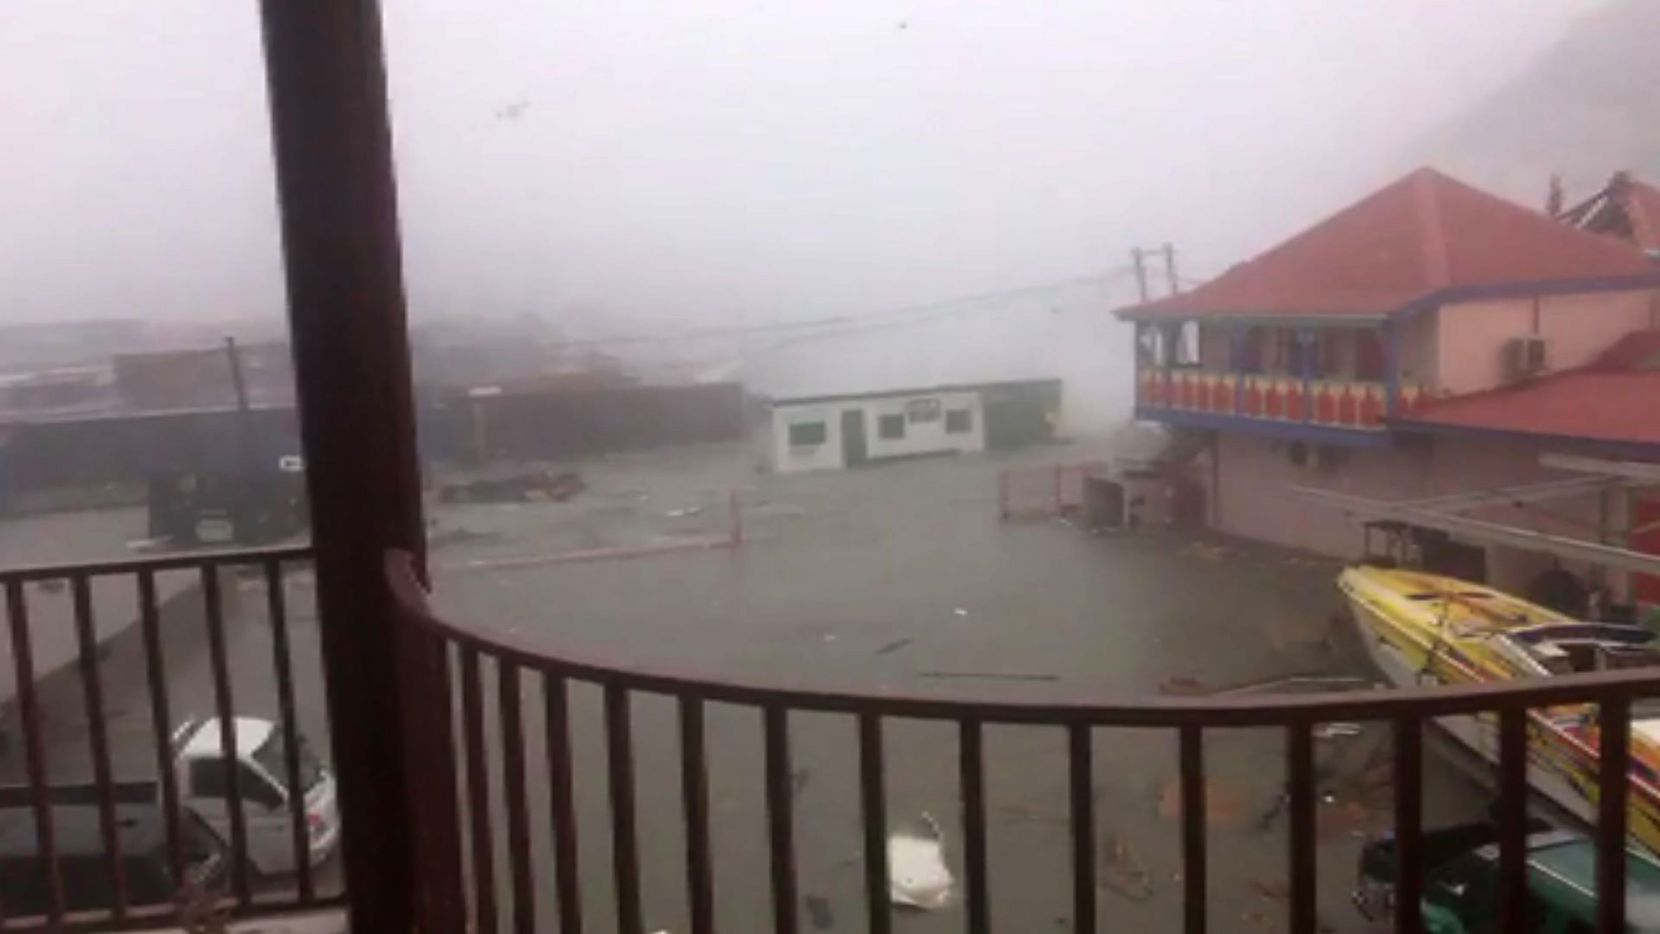 In a video posted by Stefany Santacruz to Facebook, Hurricane Irma hits the Island of St. Martin on Wednesday.